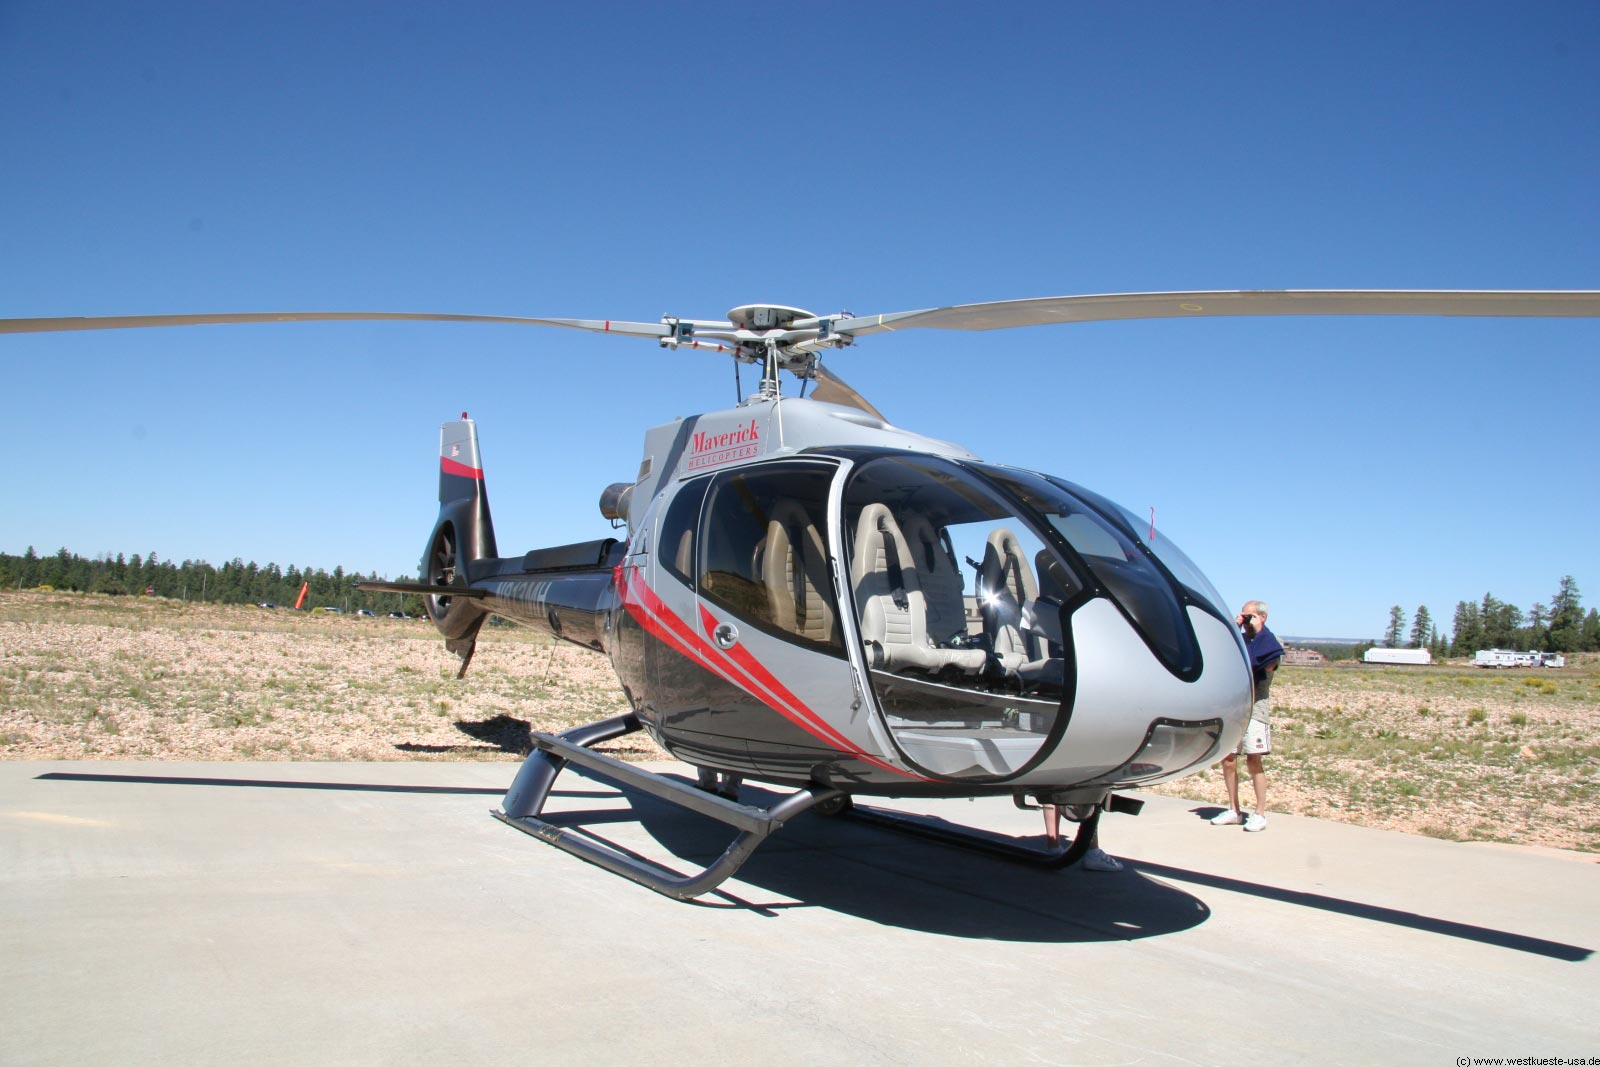 maverick grand canyon helicopter with P Helikopter on Las Vegas Helicopter Tours moreover In The News as well Tour West Rim Grand Canyon in addition North Canyon Tour also Survol Grand Canyon.